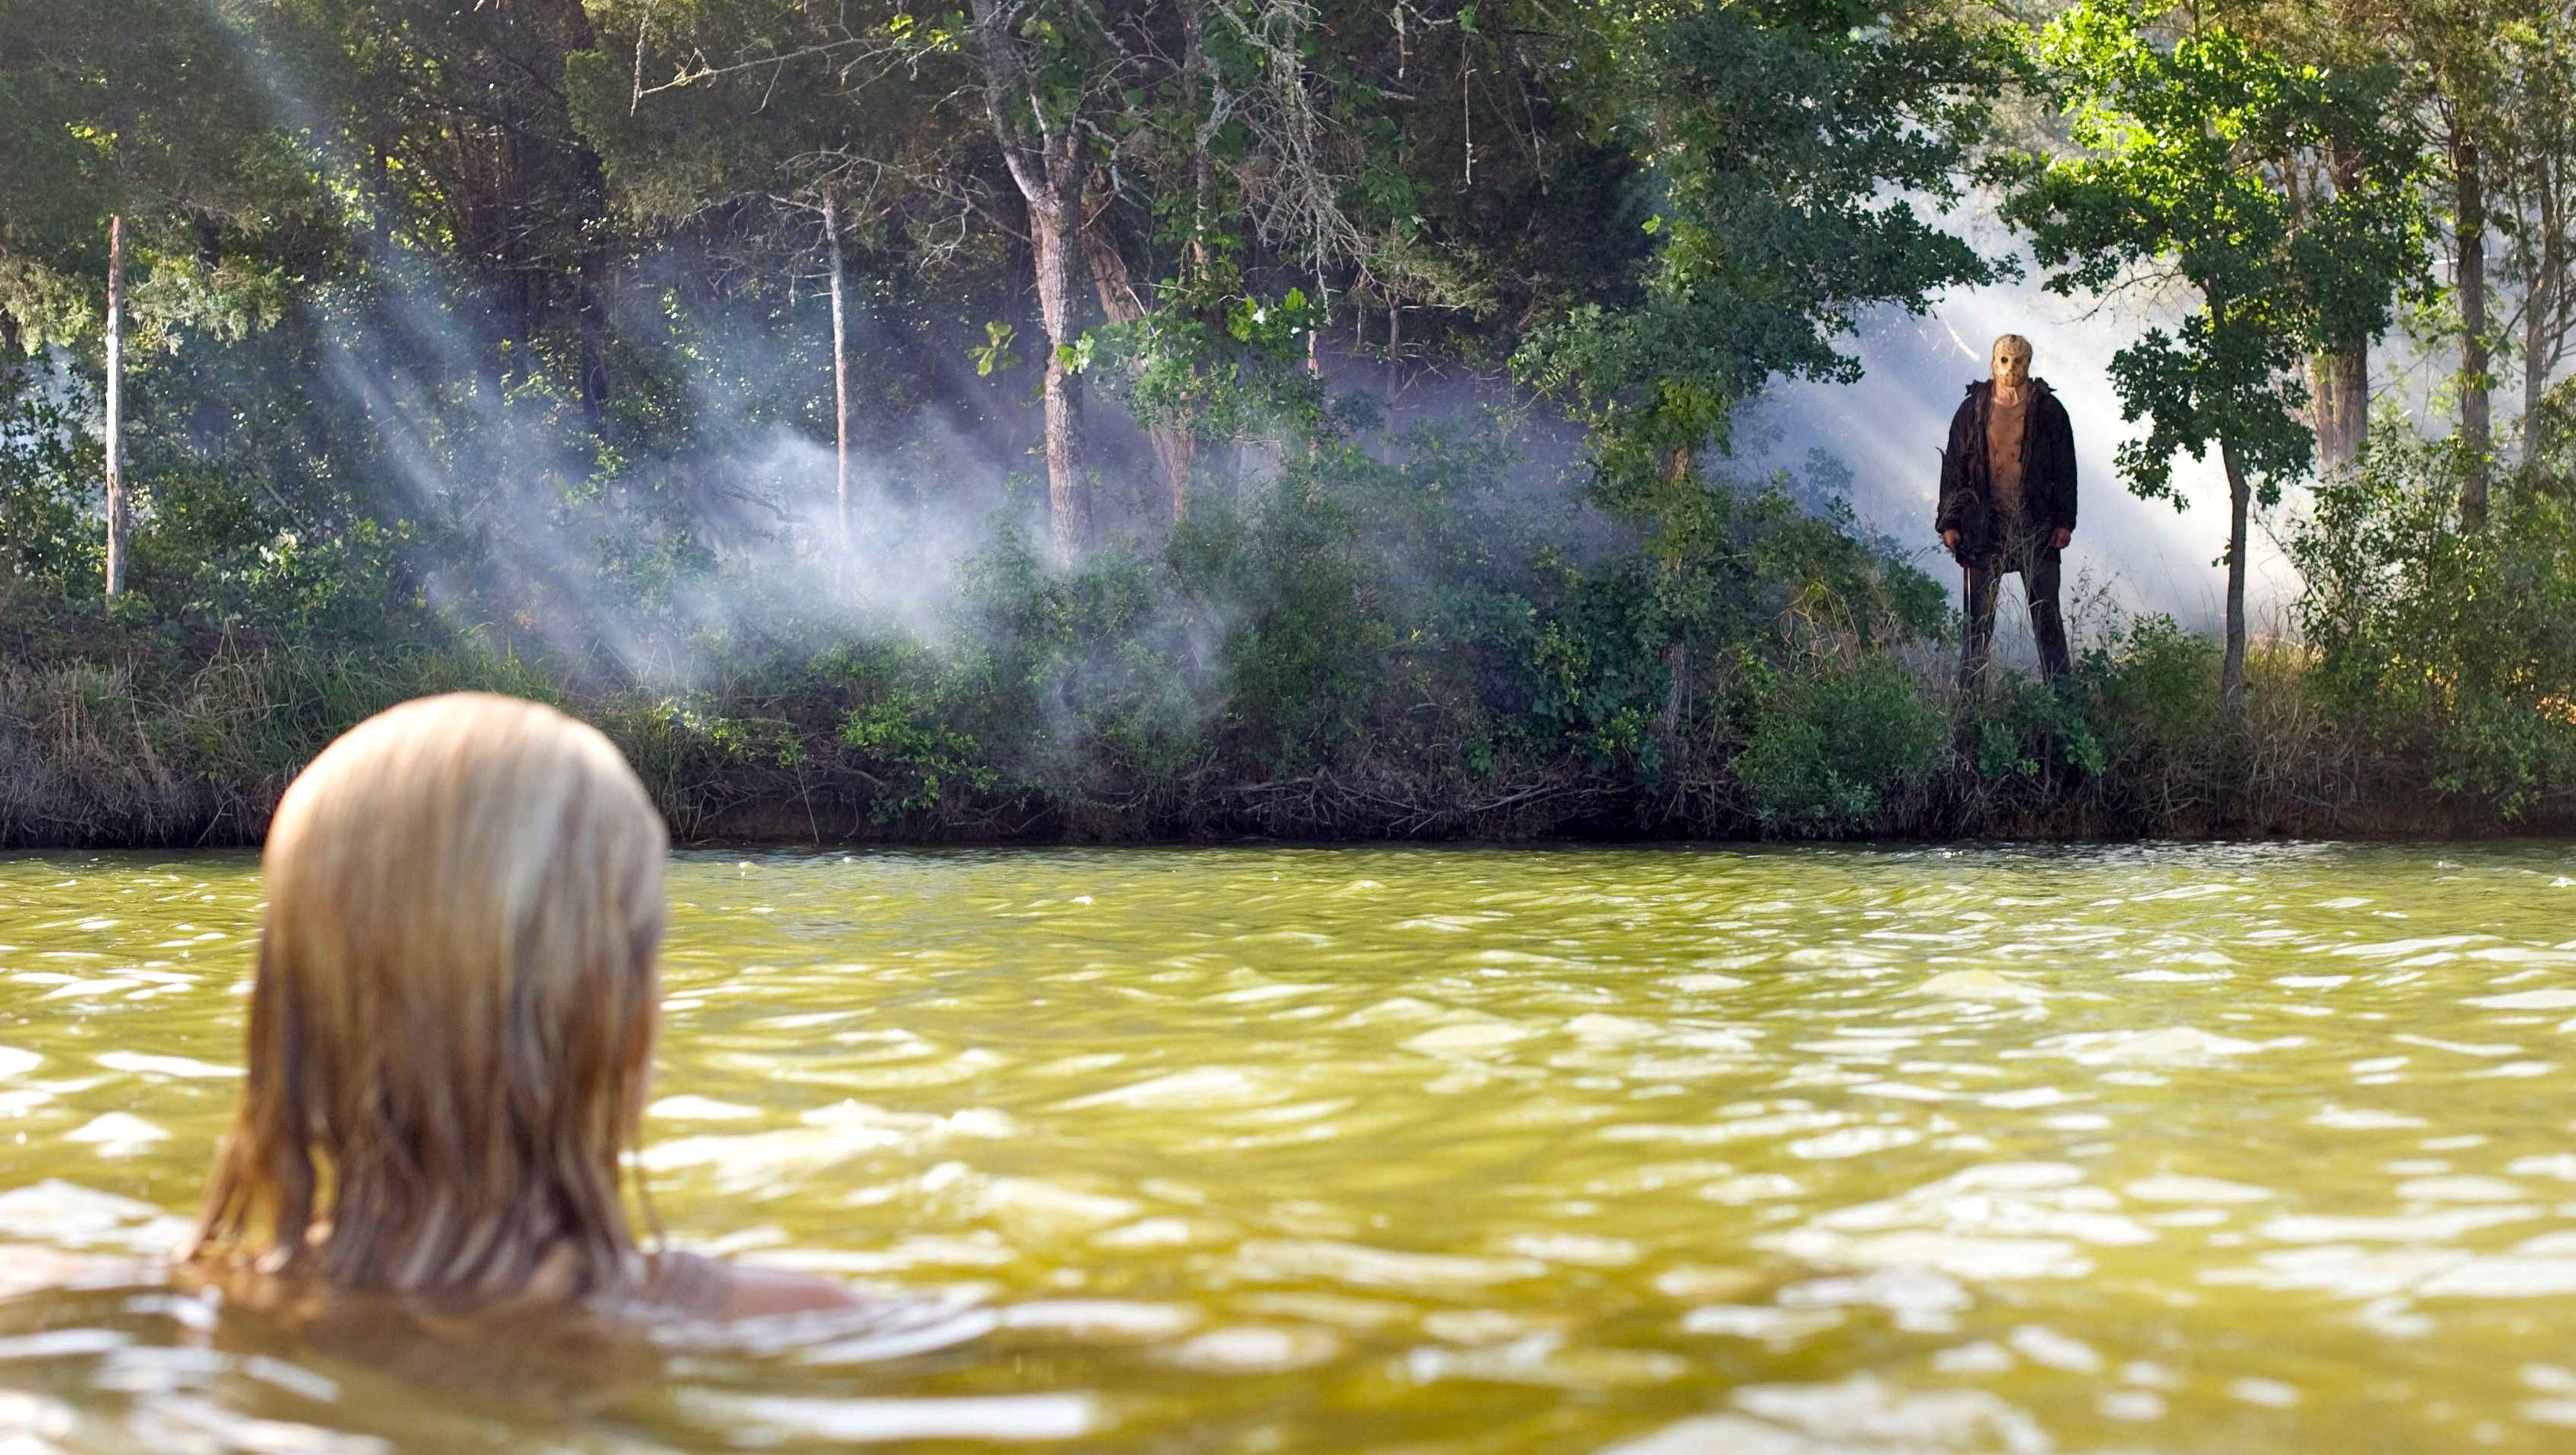 Friday The 13th HD Wallpapers (High Quality) - All HD Wallpapers